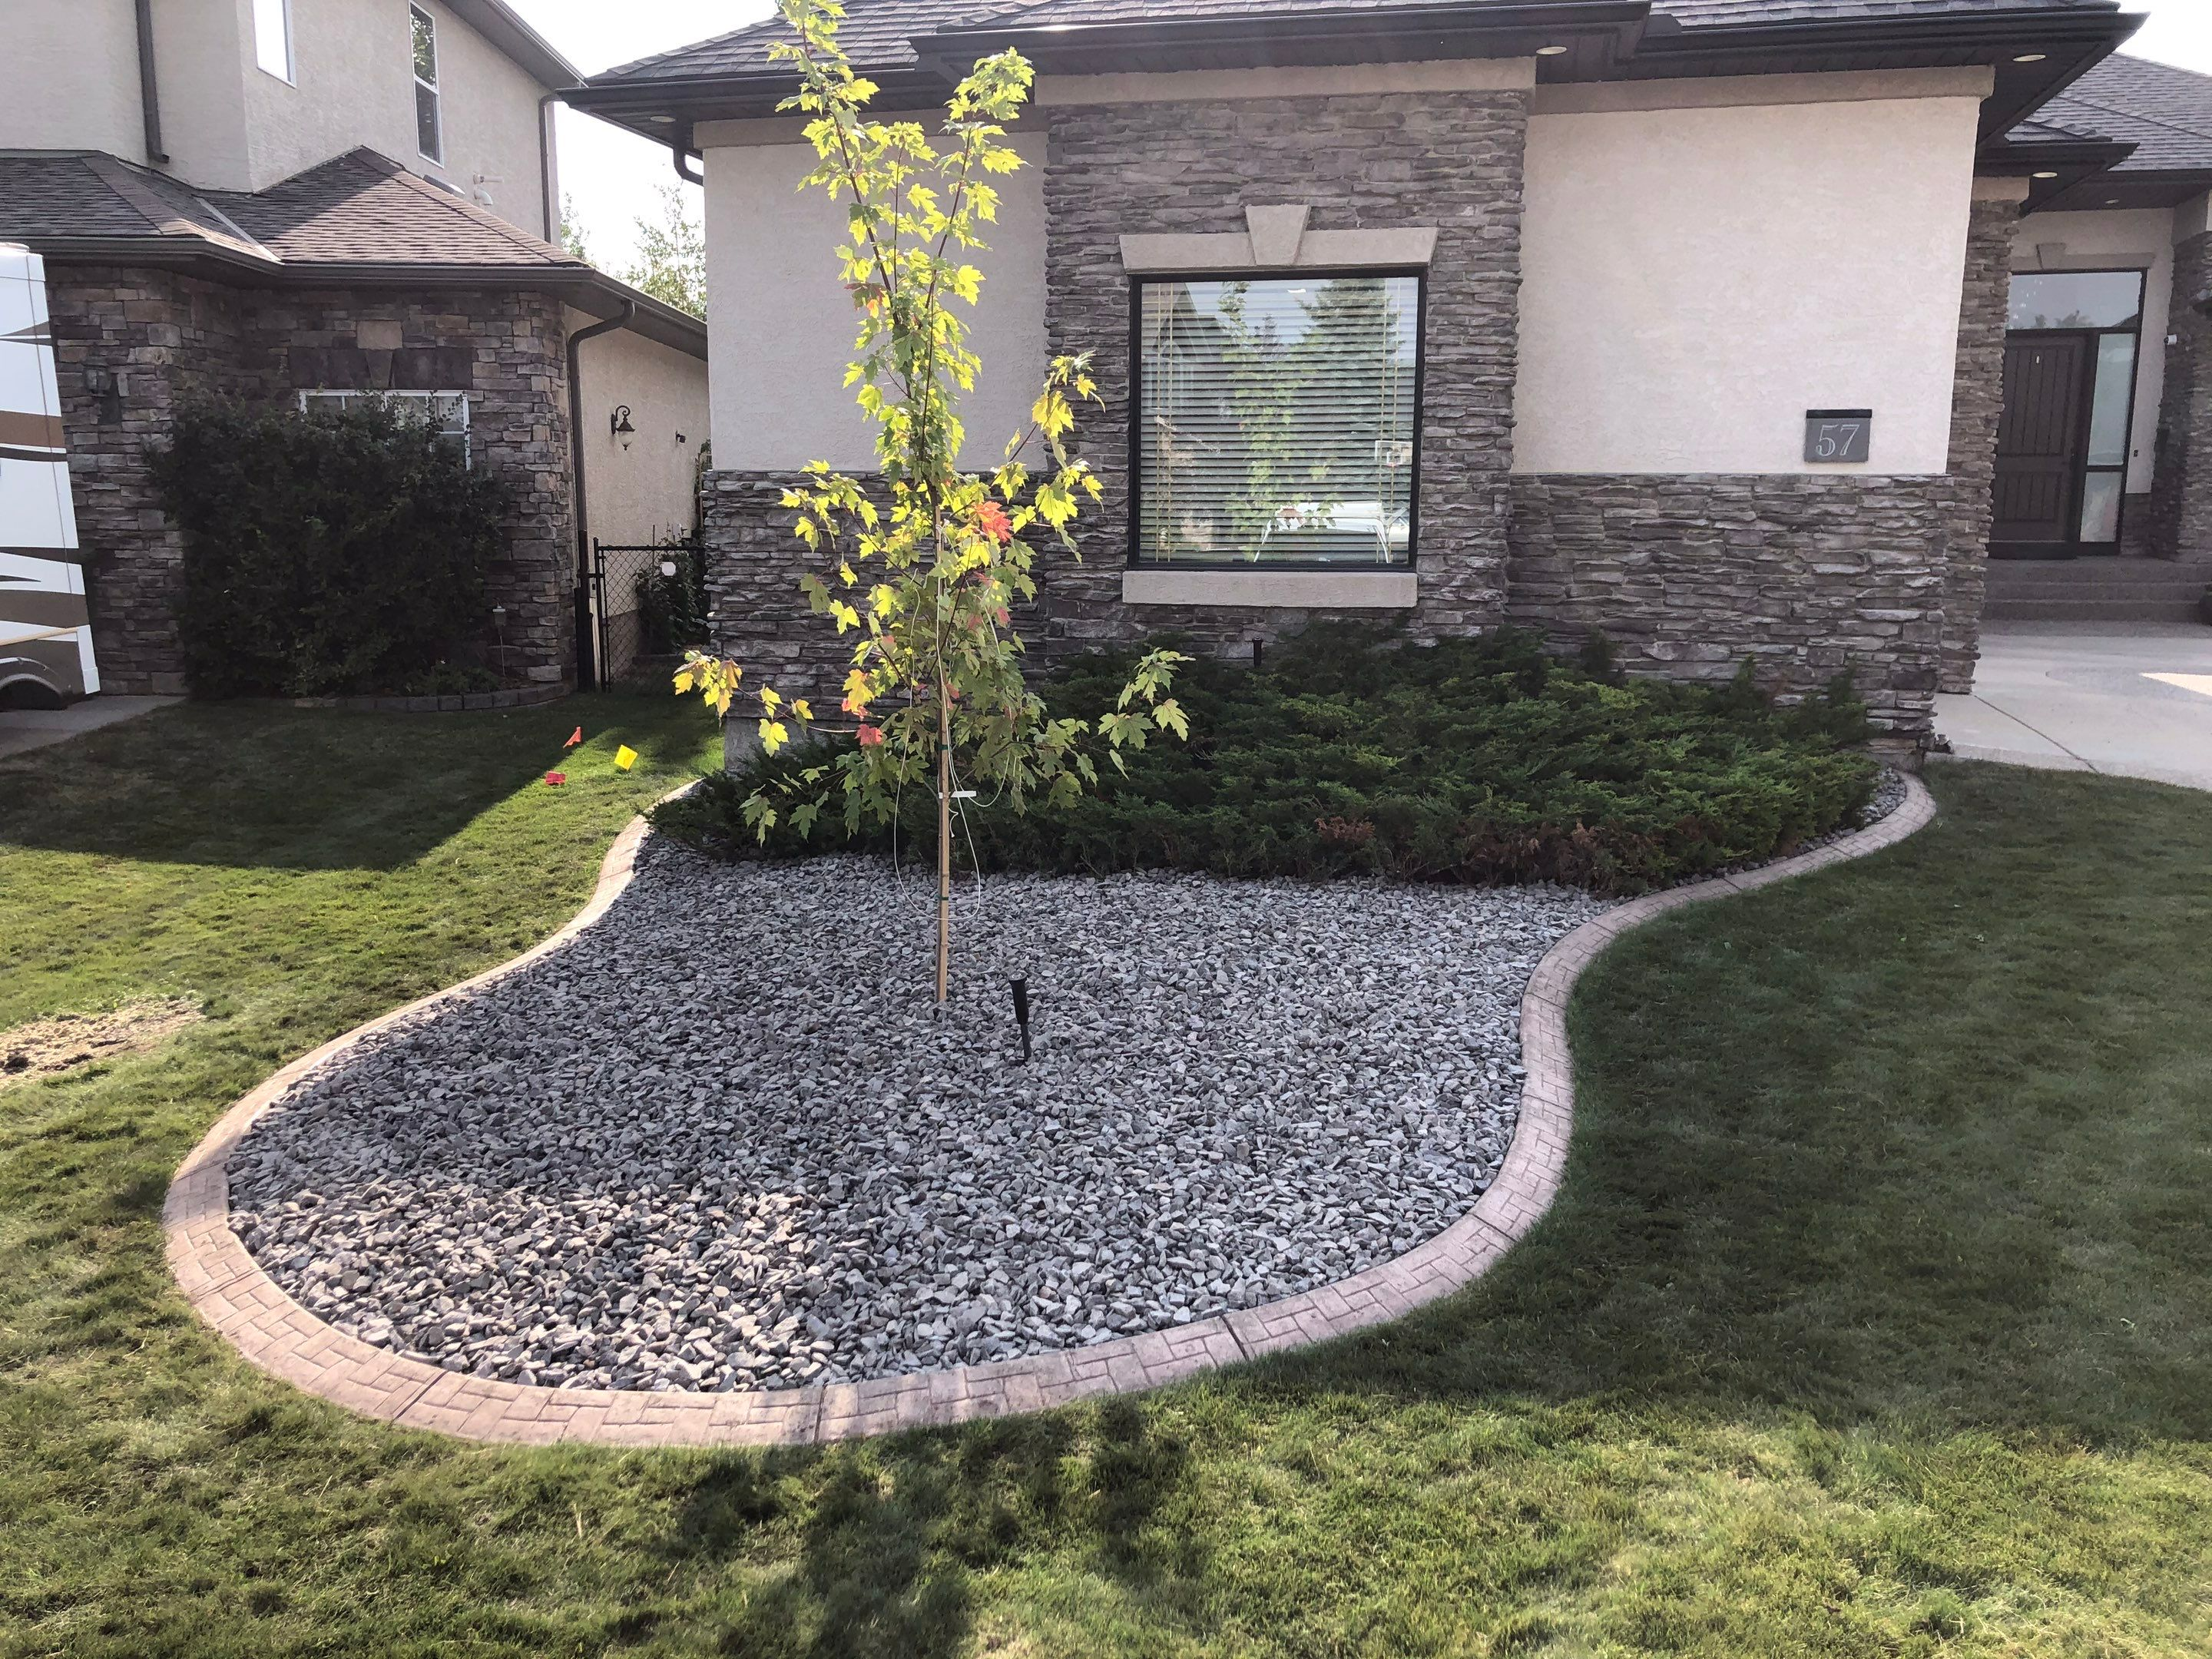 Transform the look of your yard at a lower price point. Our Softscape design team will bring your vision to life by installing flower beds, plant trees, shrubs, perennials, and annuals with mulching and xeriscaping installations. We can give your lawn an overhaul with sod installations and removal of trees and plants in Alberta.